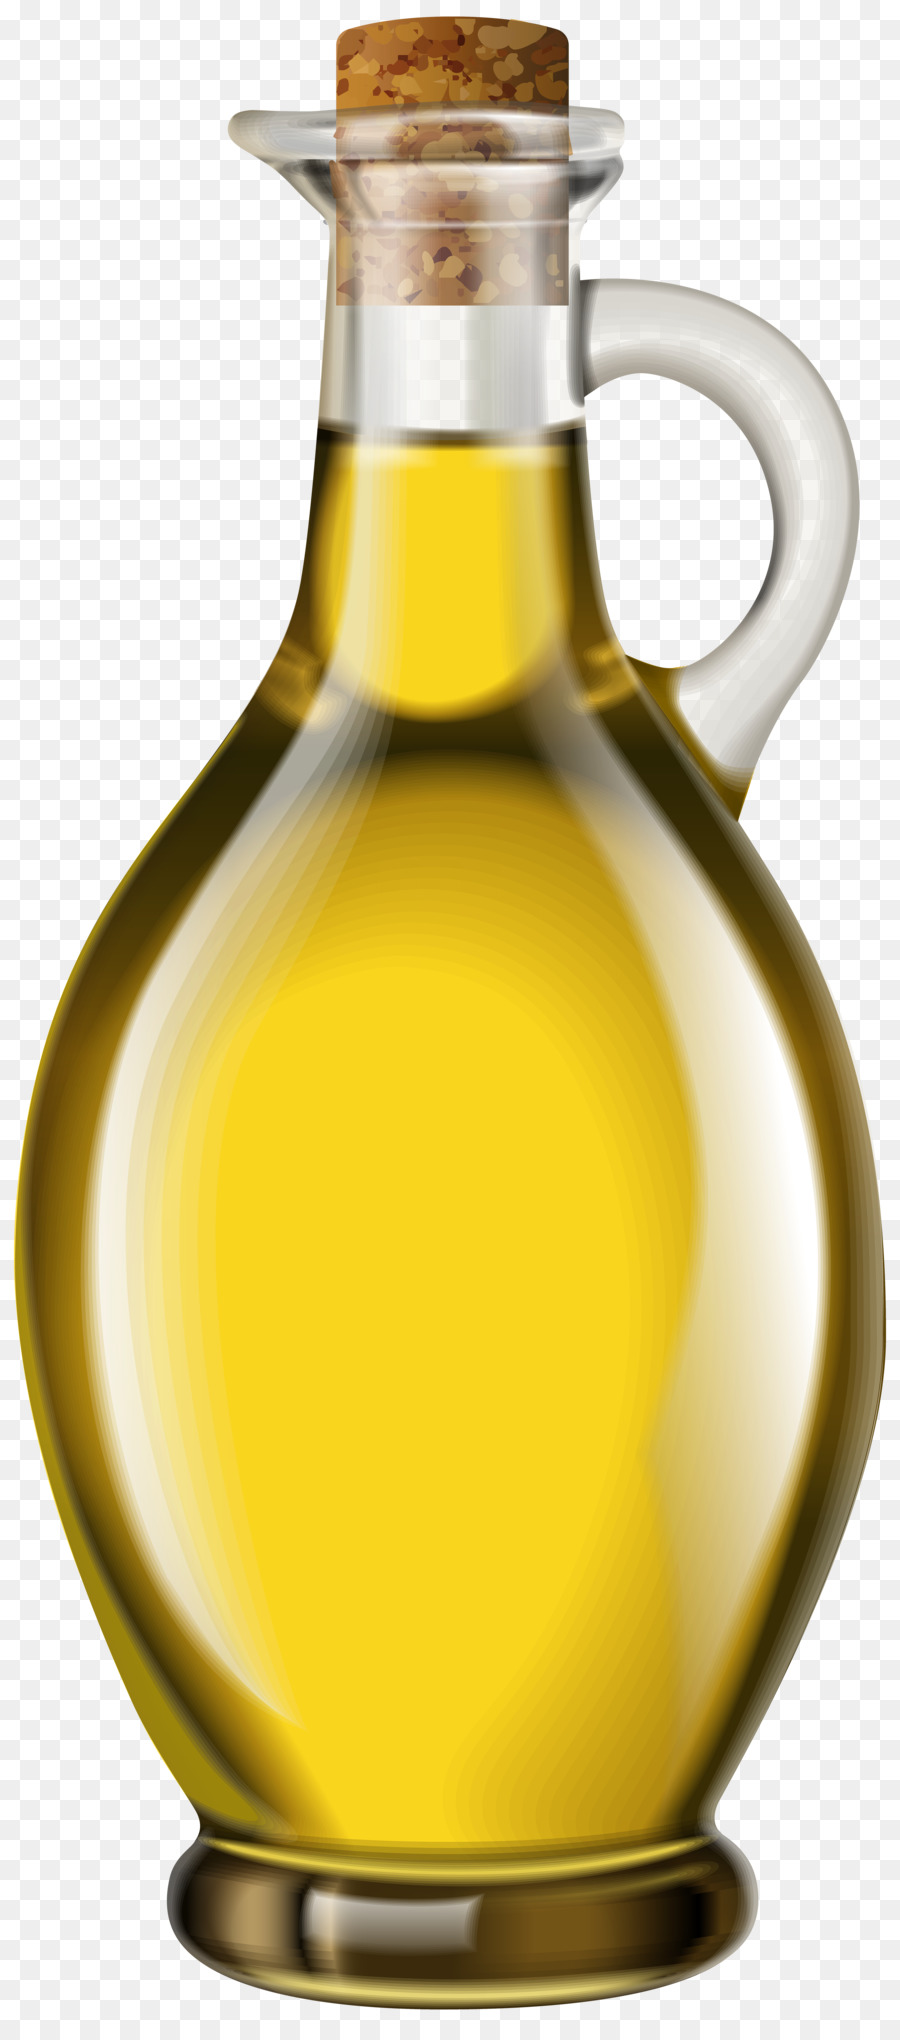 Olive png download free. Oil clipart peanut oil